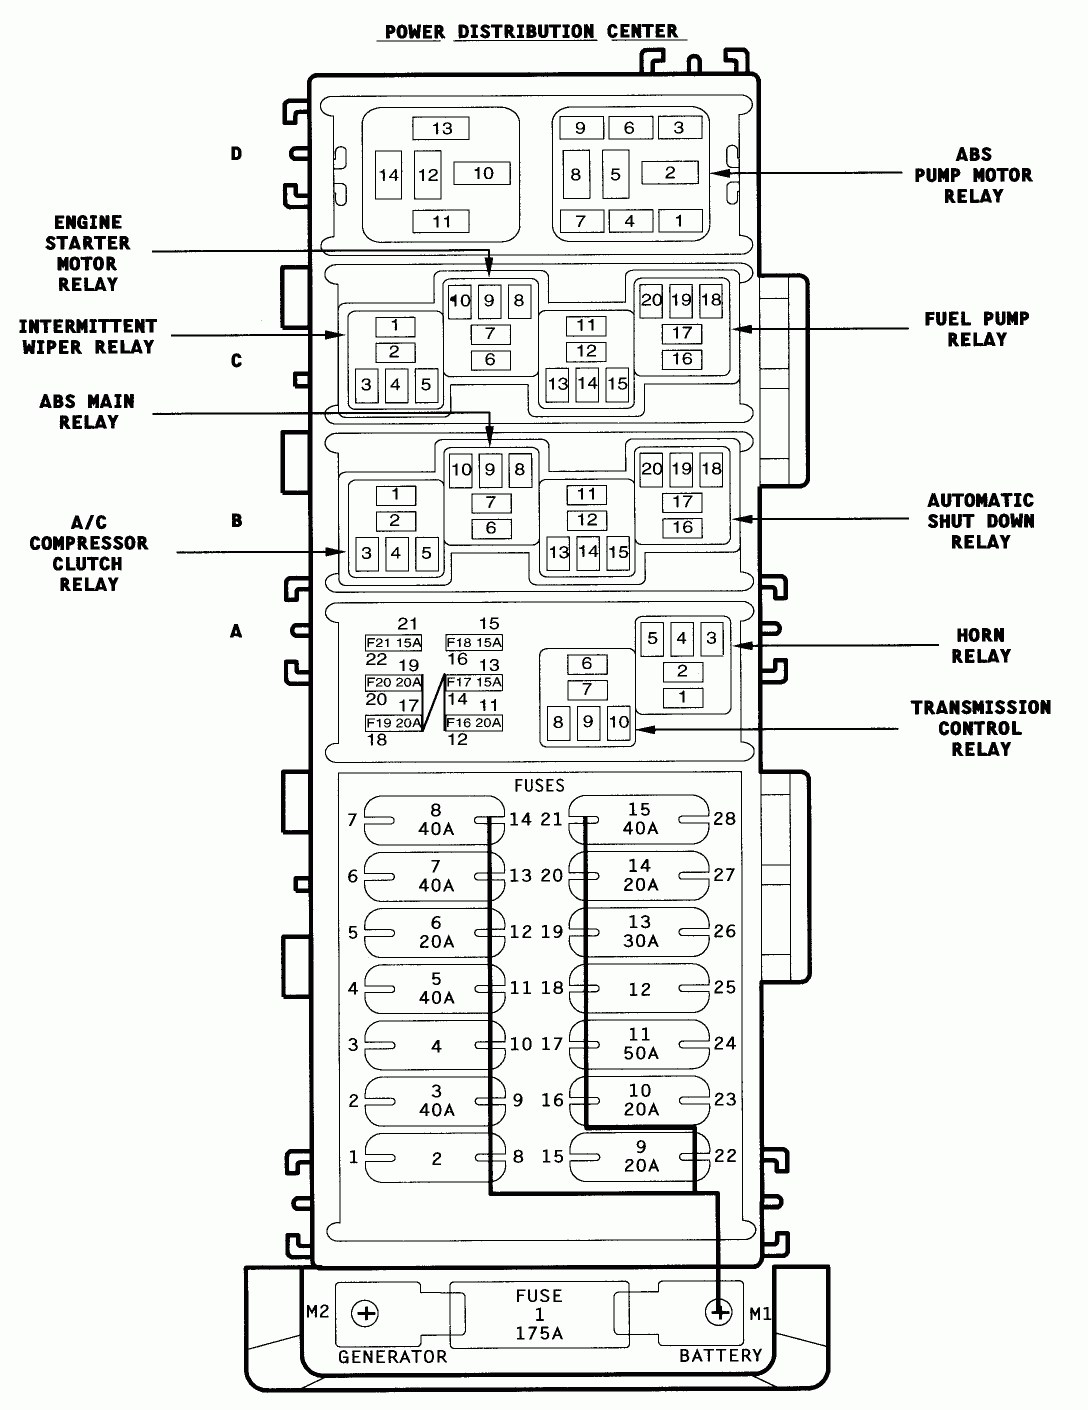 yw_3585] 1996 jeep grand cherokee fuse box diagram as well 2000 ford f 250  schematic wiring  ophen ponol ostr aeocy lline sianu semec mohammedshrine librar wiring 101